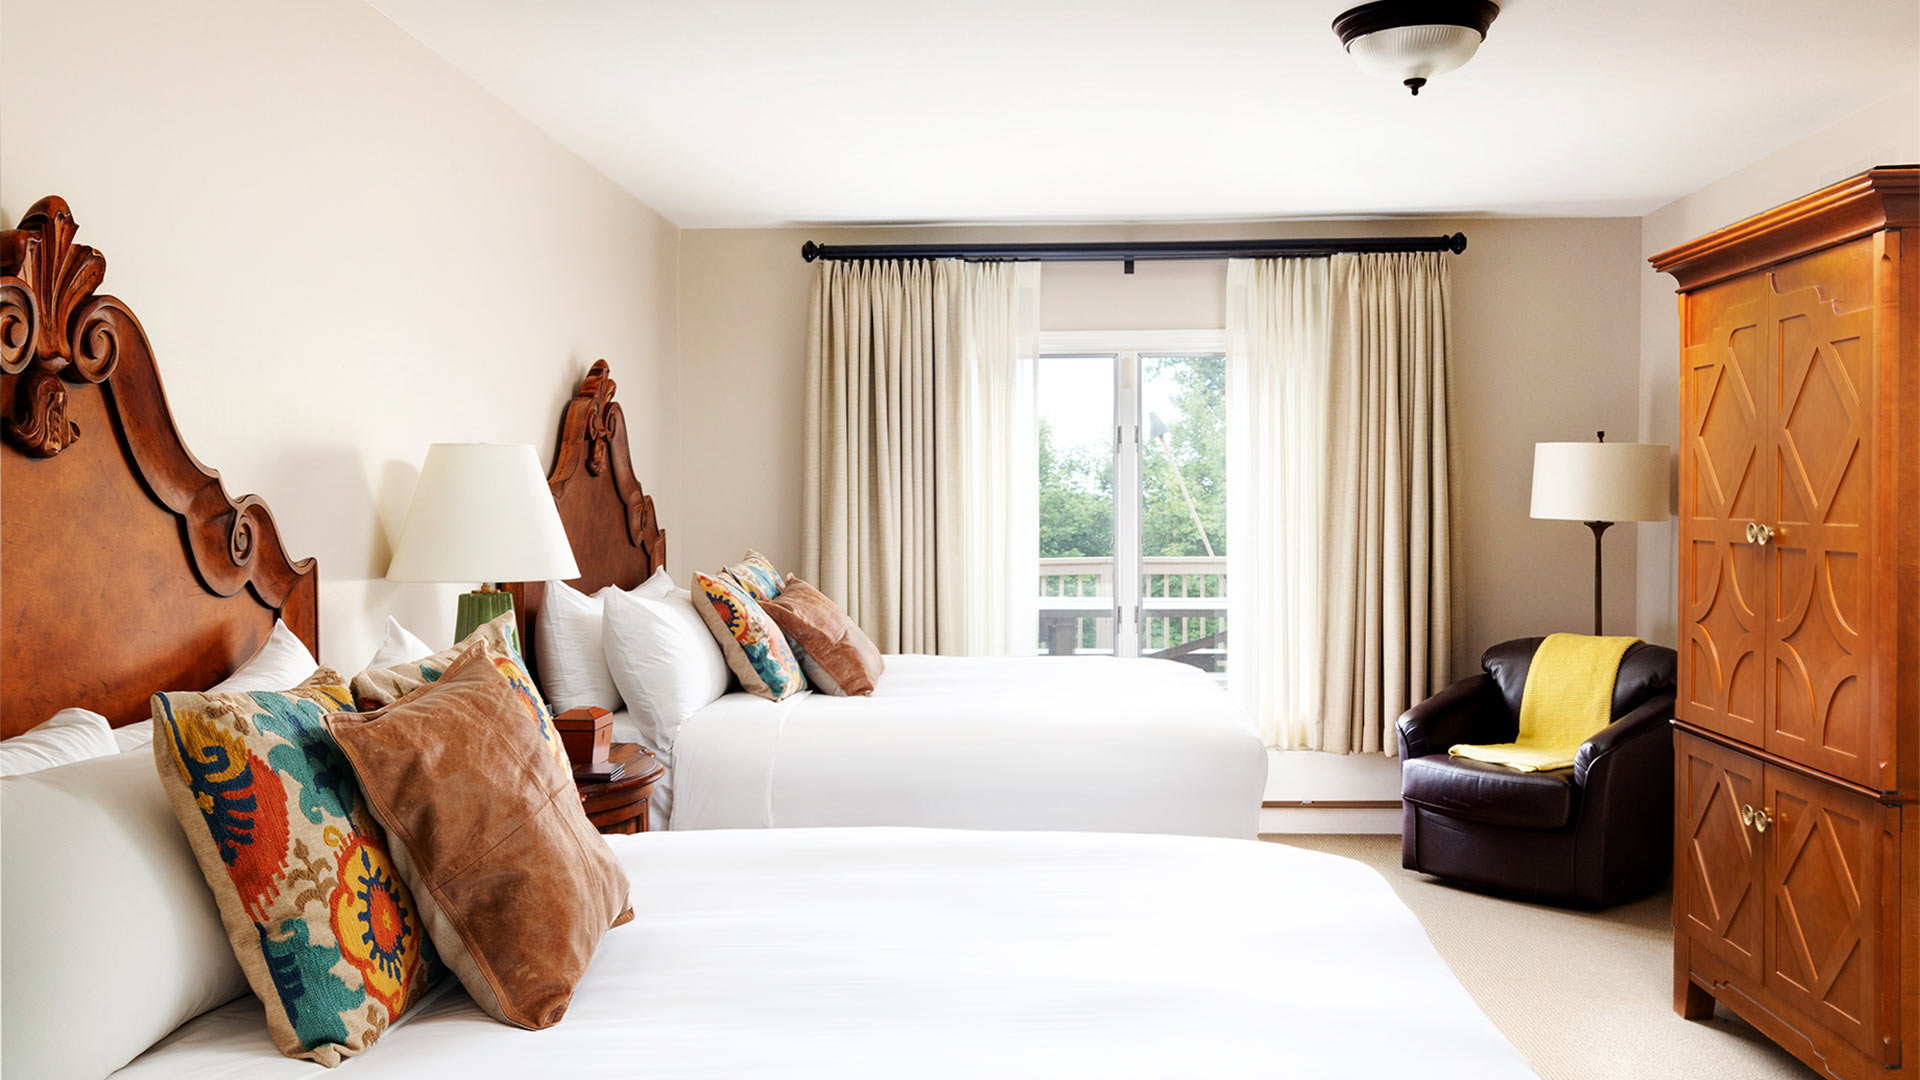 a bedroom with two queen beds. Both beds have white bedding and colorful throw pillows and intricate wooden headboards. There is a armoir and small sitting area on the other side of the room